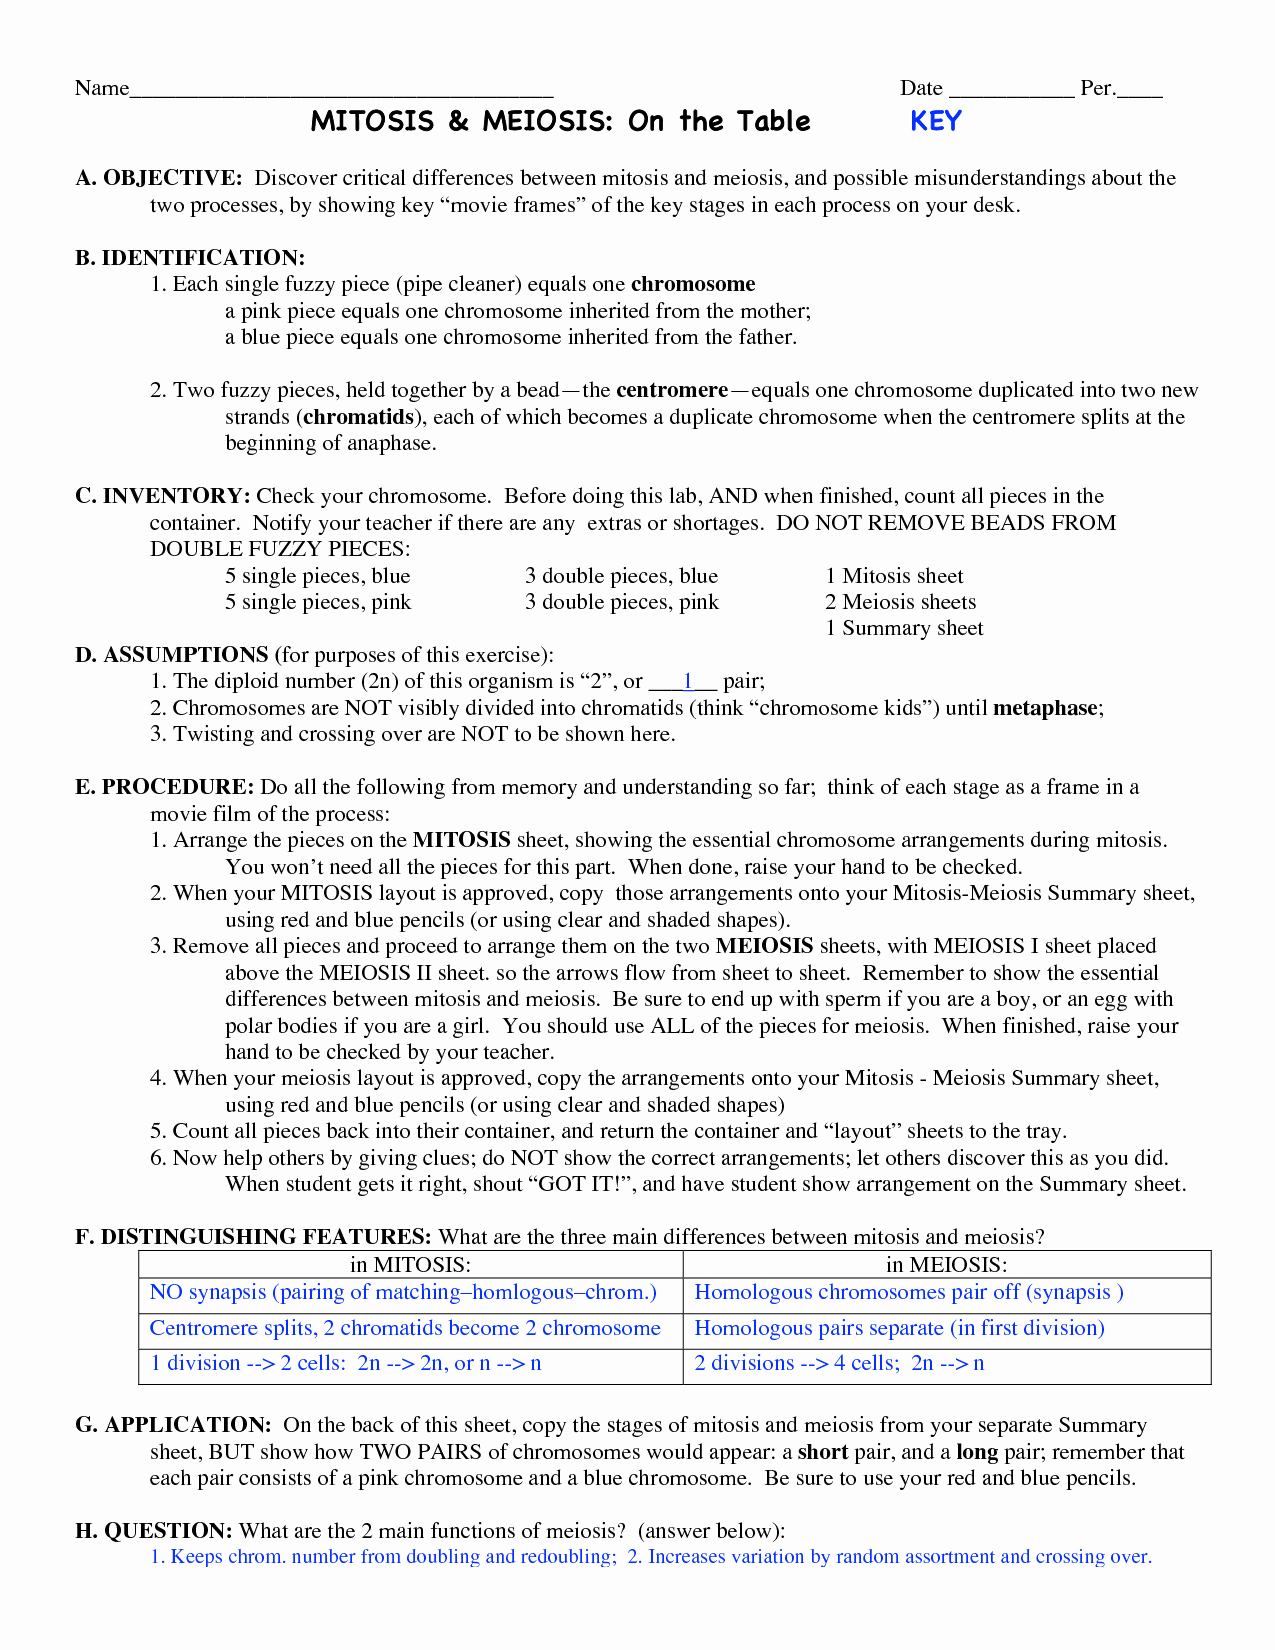 Mitosis Vs Meiosis Worksheet Answers Lovely 13 Best Of Paring Mitosis and Meiosis Worksheet